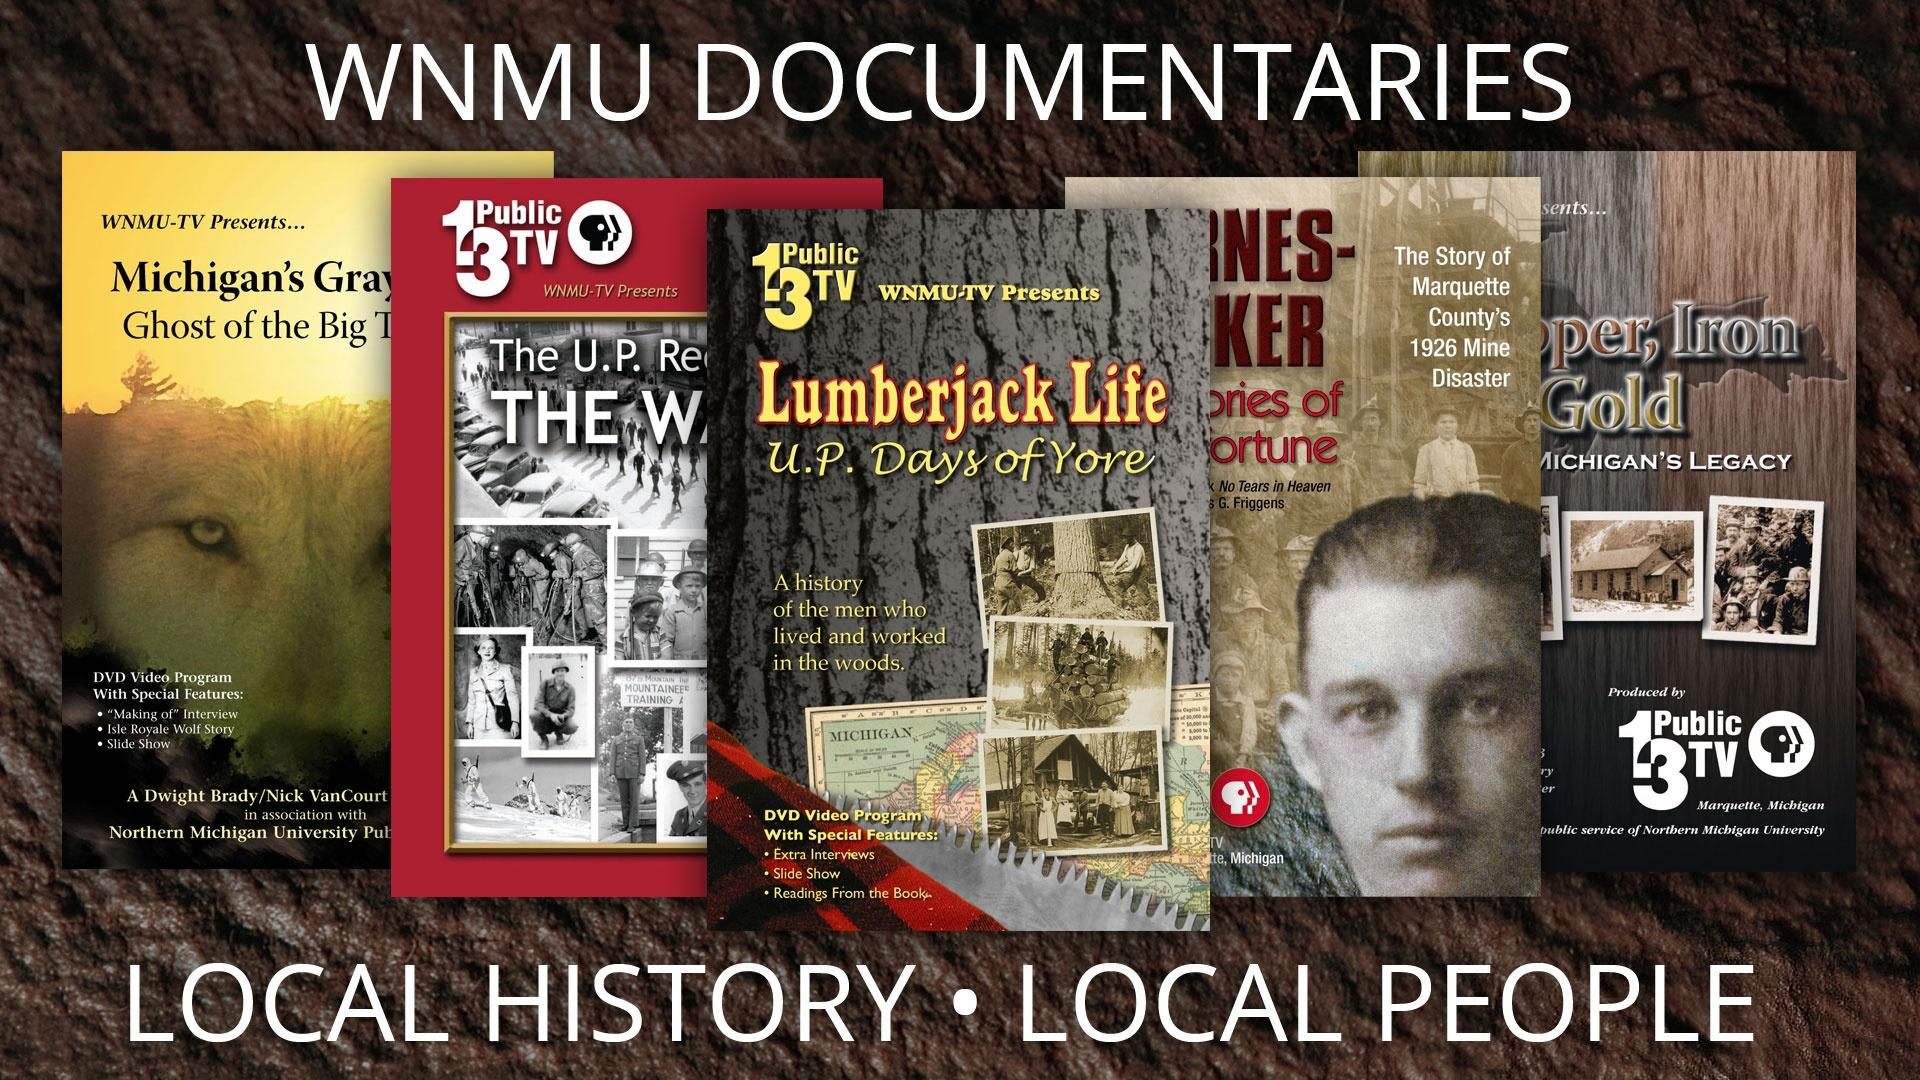 WNMU-TV Documentaries & Specials